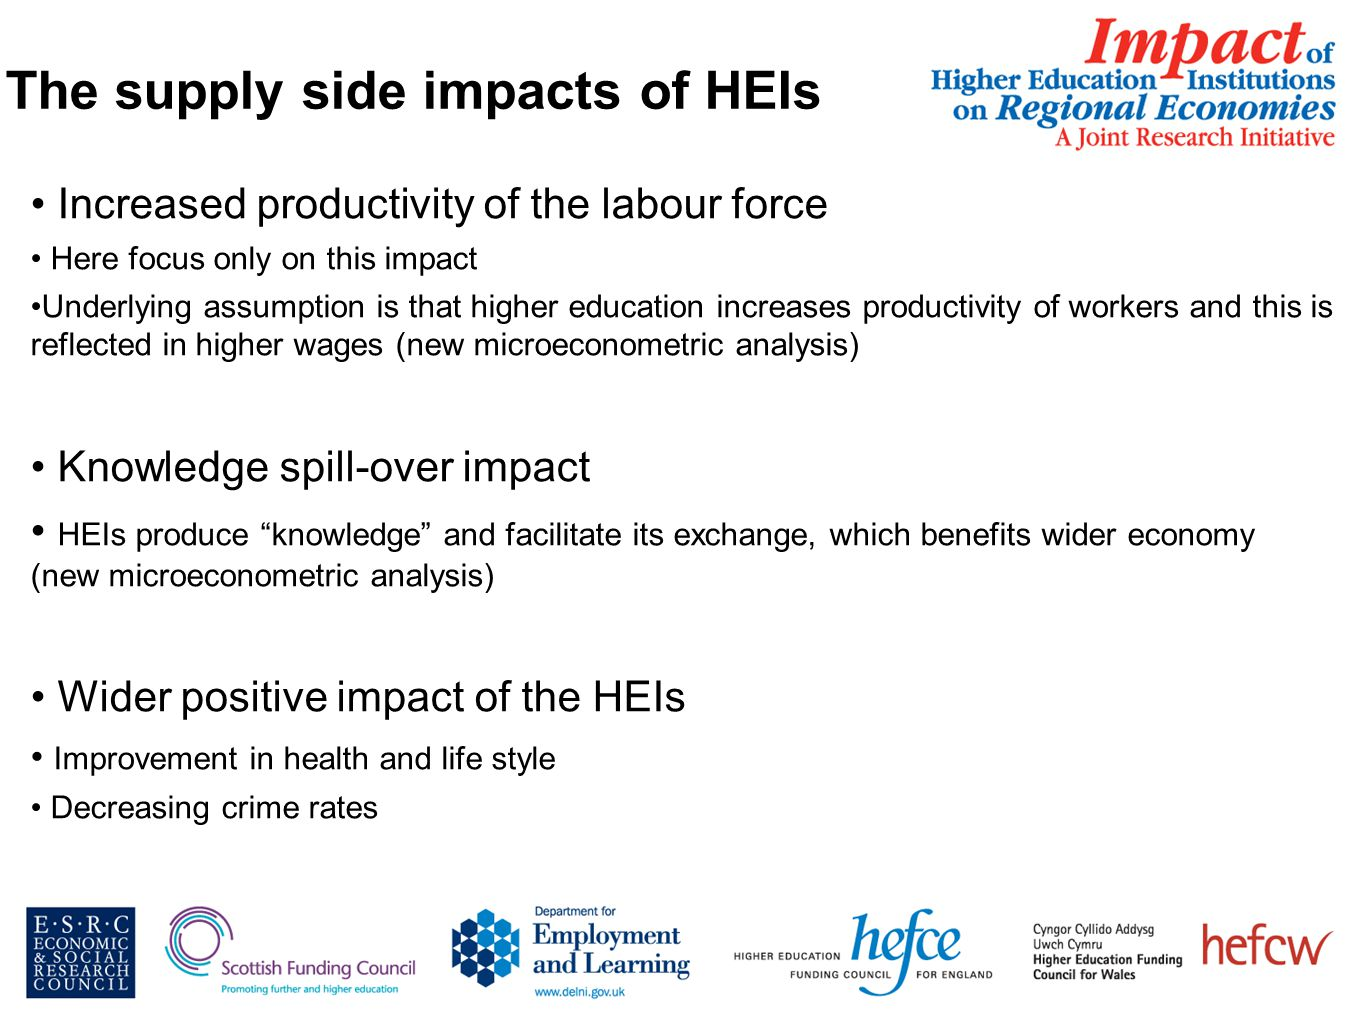 The supply side impacts of HEIs Increased productivity of the labour force Here focus only on this impact Underlying assumption is that higher education increases productivity of workers and this is reflected in higher wages (new microeconometric analysis) Knowledge spill-over impact HEIs produce knowledge and facilitate its exchange, which benefits wider economy (new microeconometric analysis) Wider positive impact of the HEIs Improvement in health and life style Decreasing crime rates